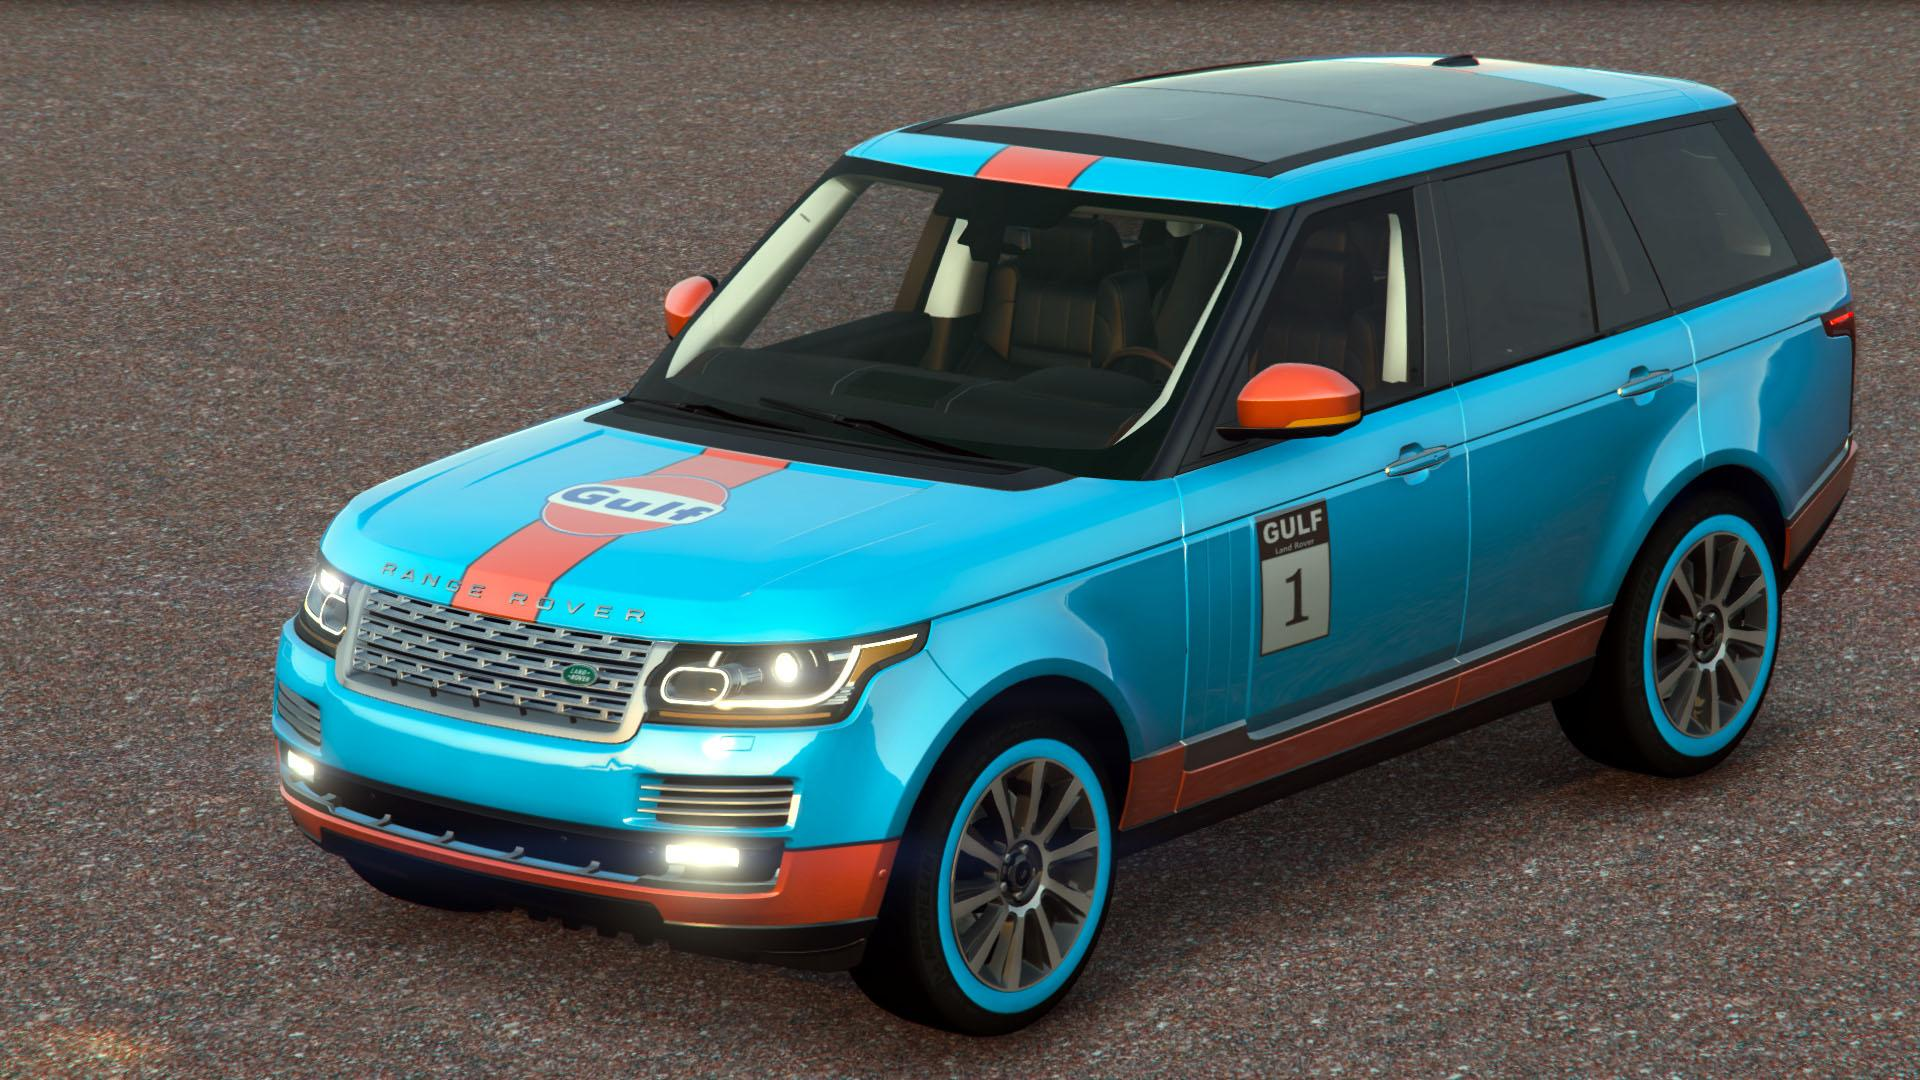 land rover range rover 2014 gulf livery gta5. Black Bedroom Furniture Sets. Home Design Ideas